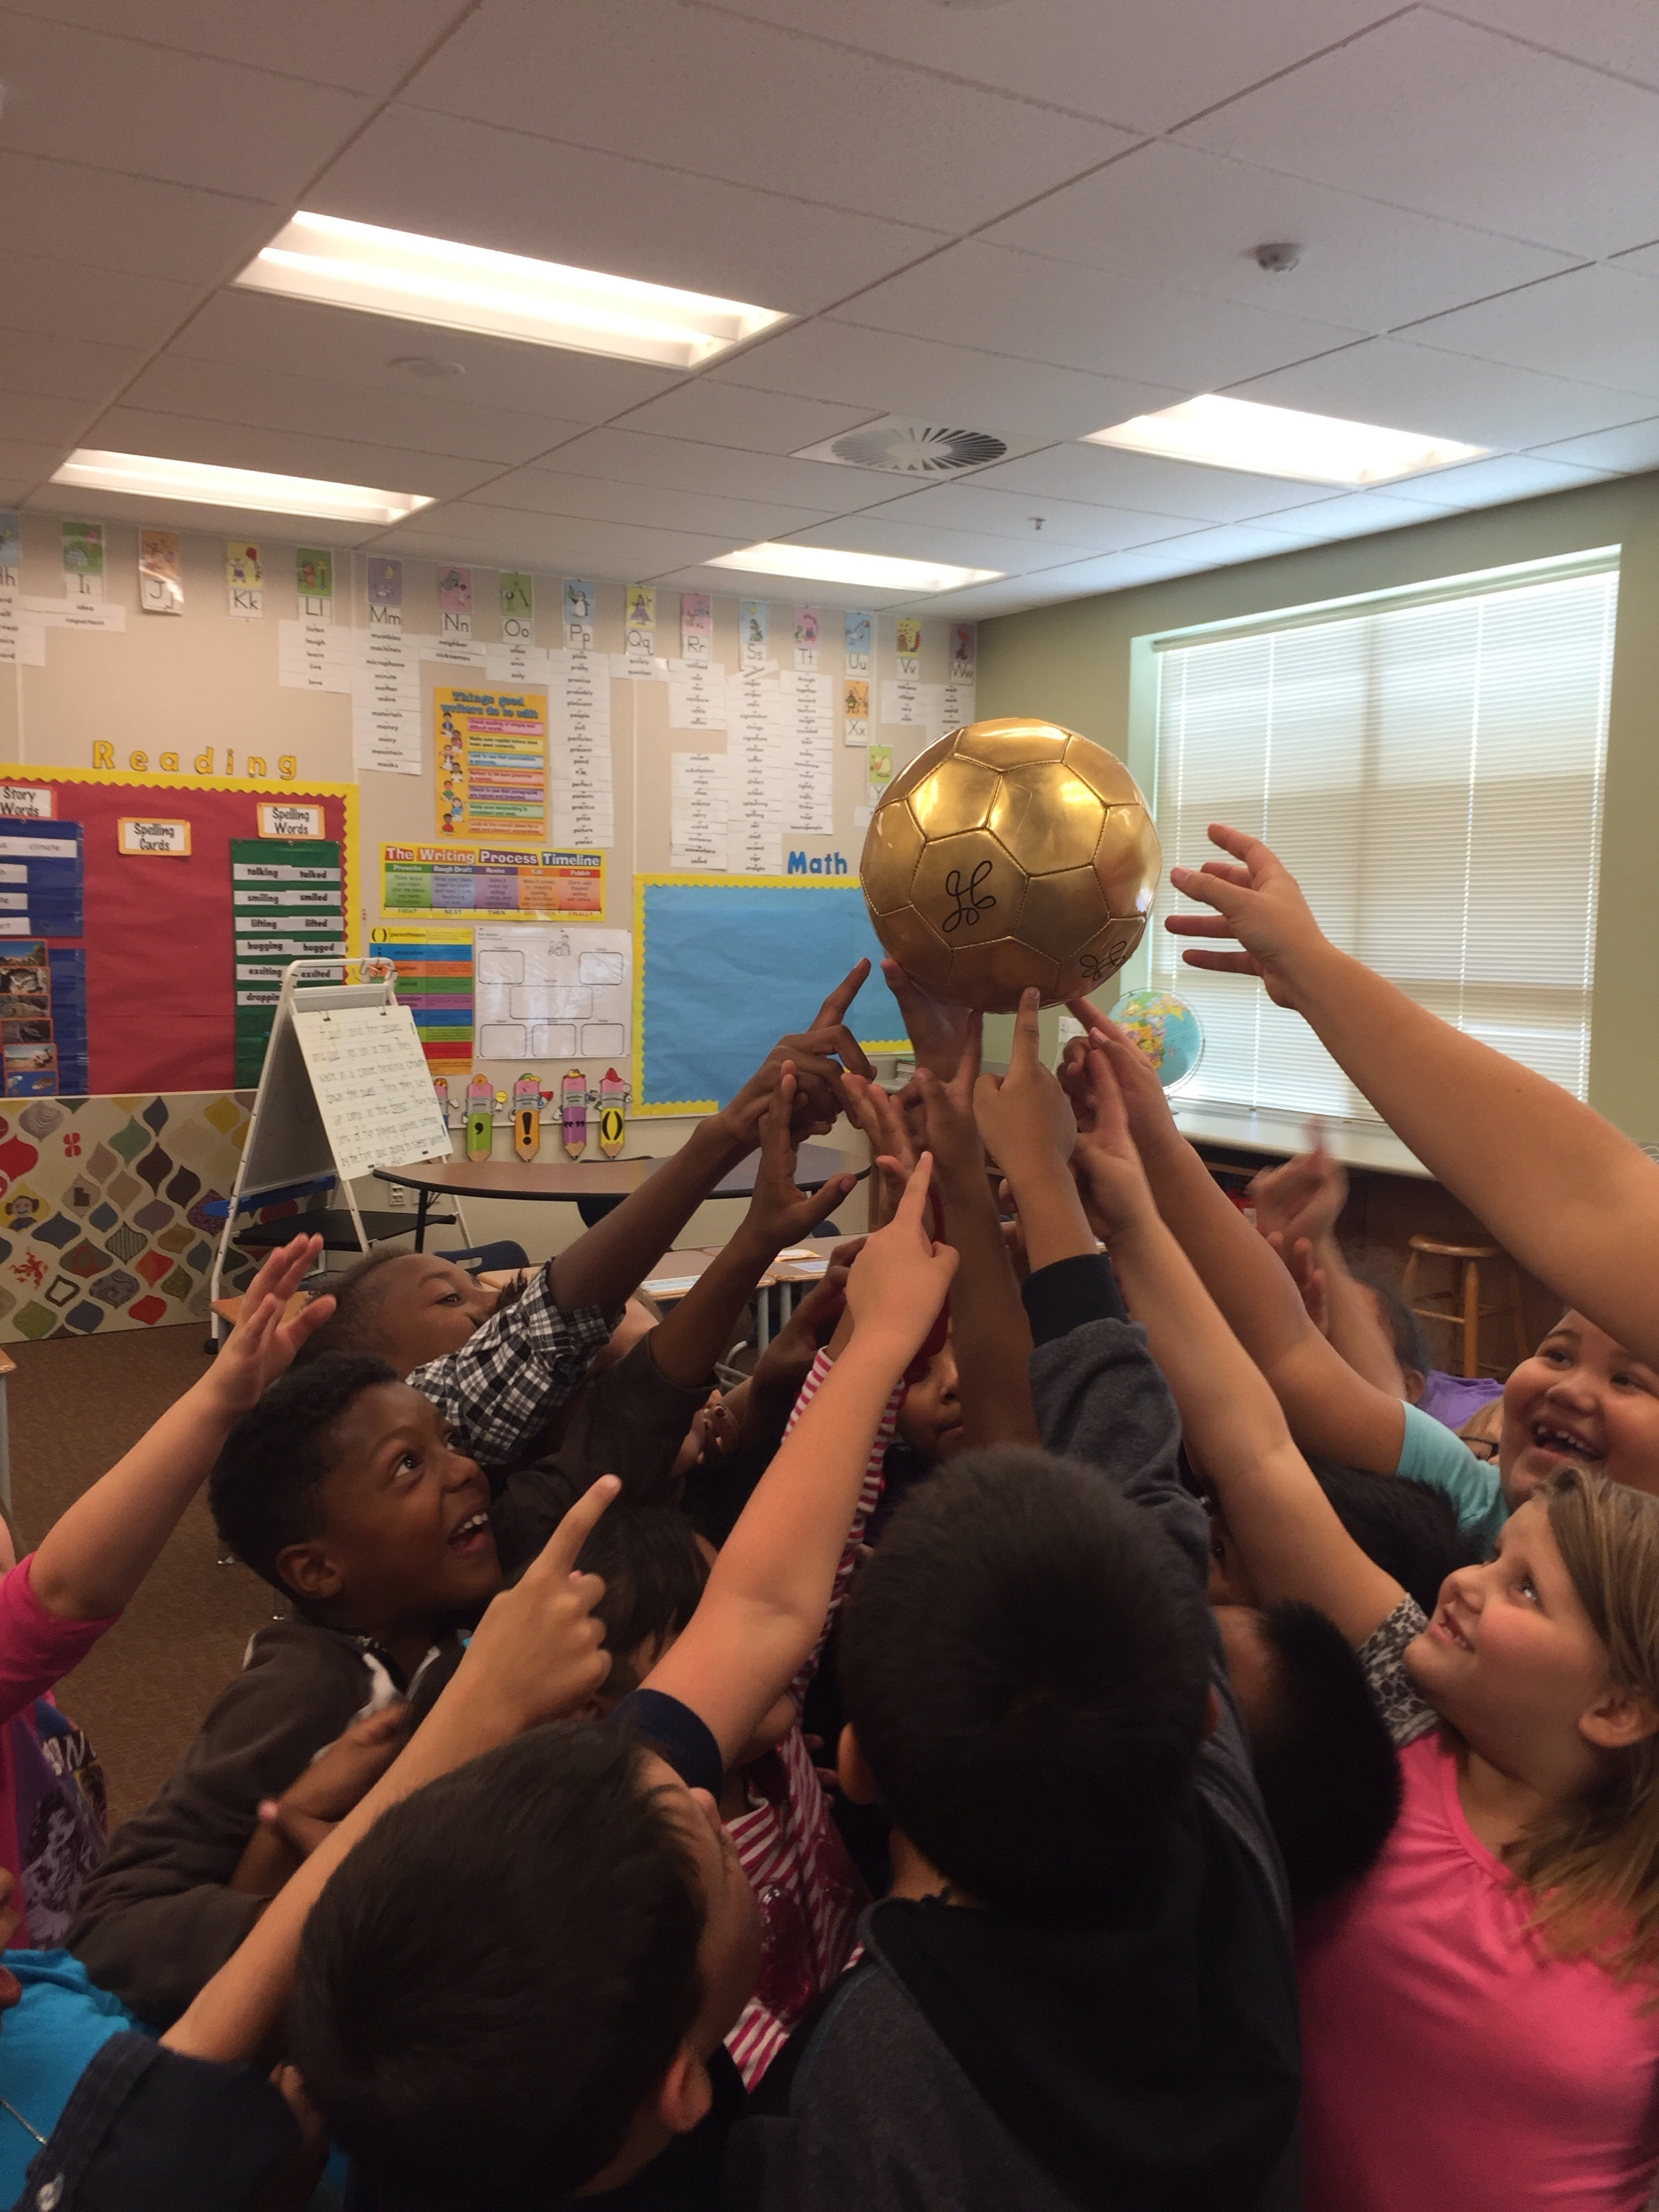 The playworks ball of excellence, given to the coach and school in Utah that most exemplifies Playworks core values of respect, inclusion, healthy community and healthy play.